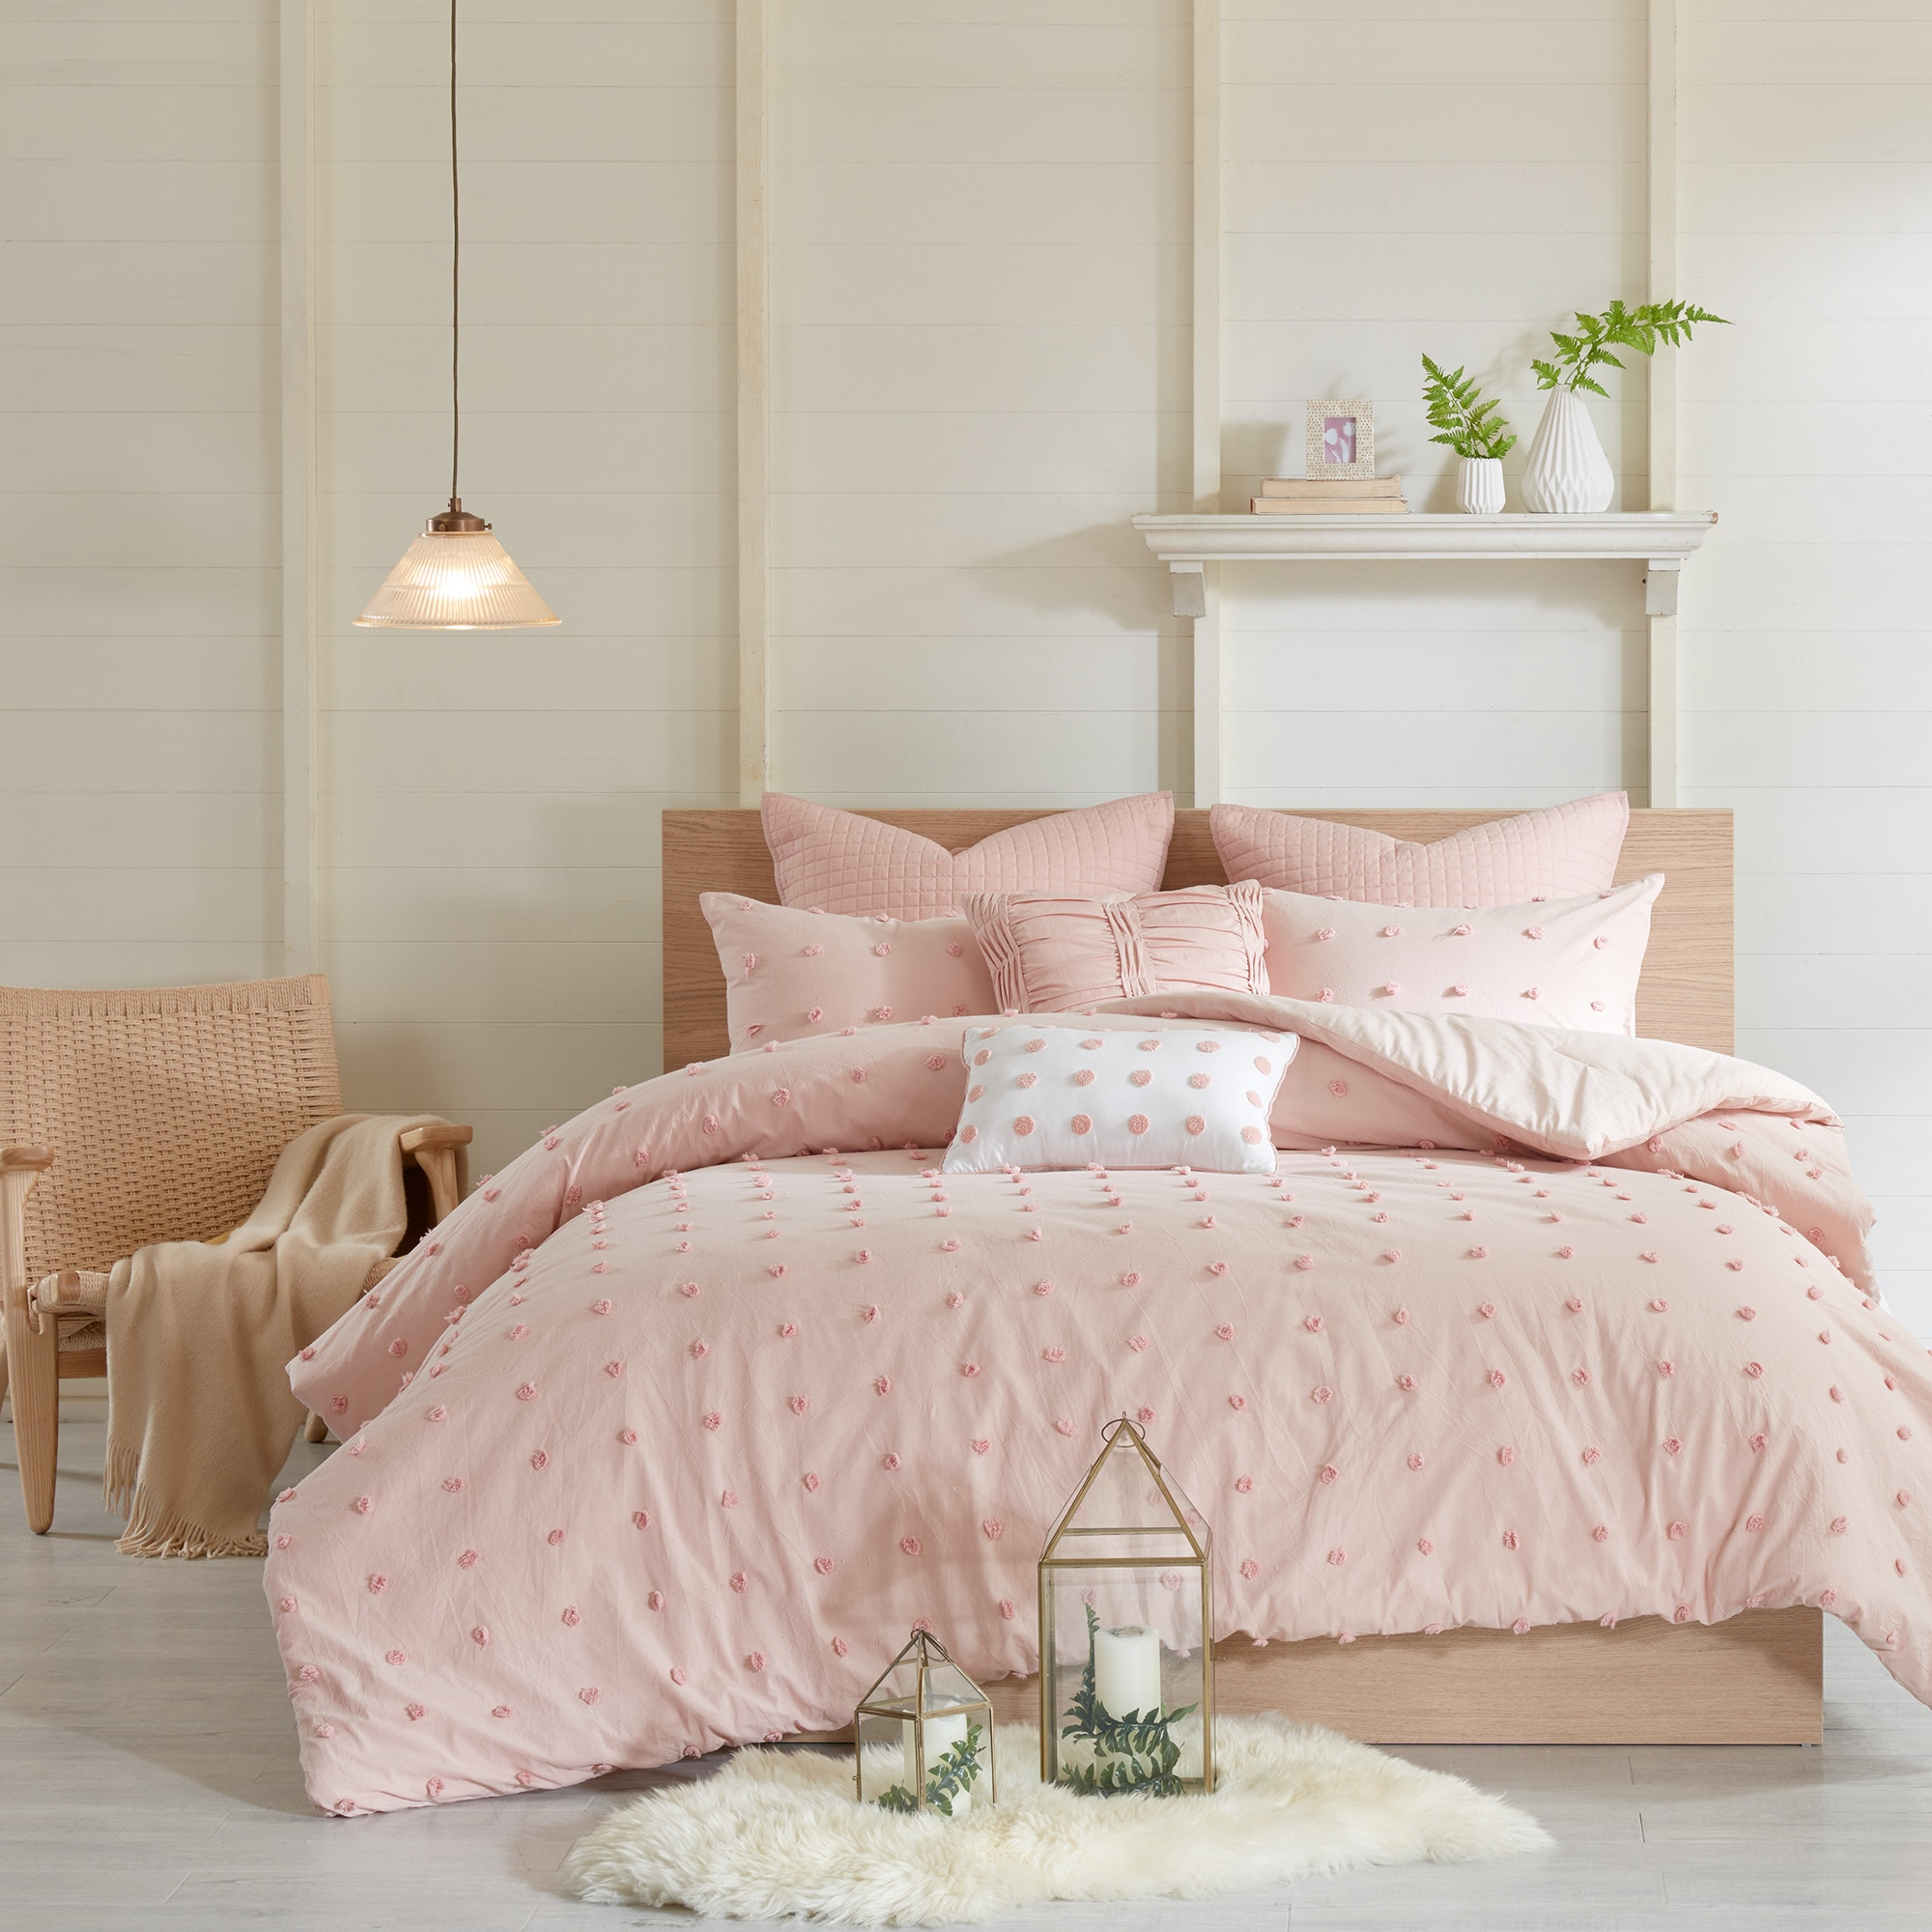 park product red com bedding free dartmouth bath set jacquard madison overstock piece bed bedspread